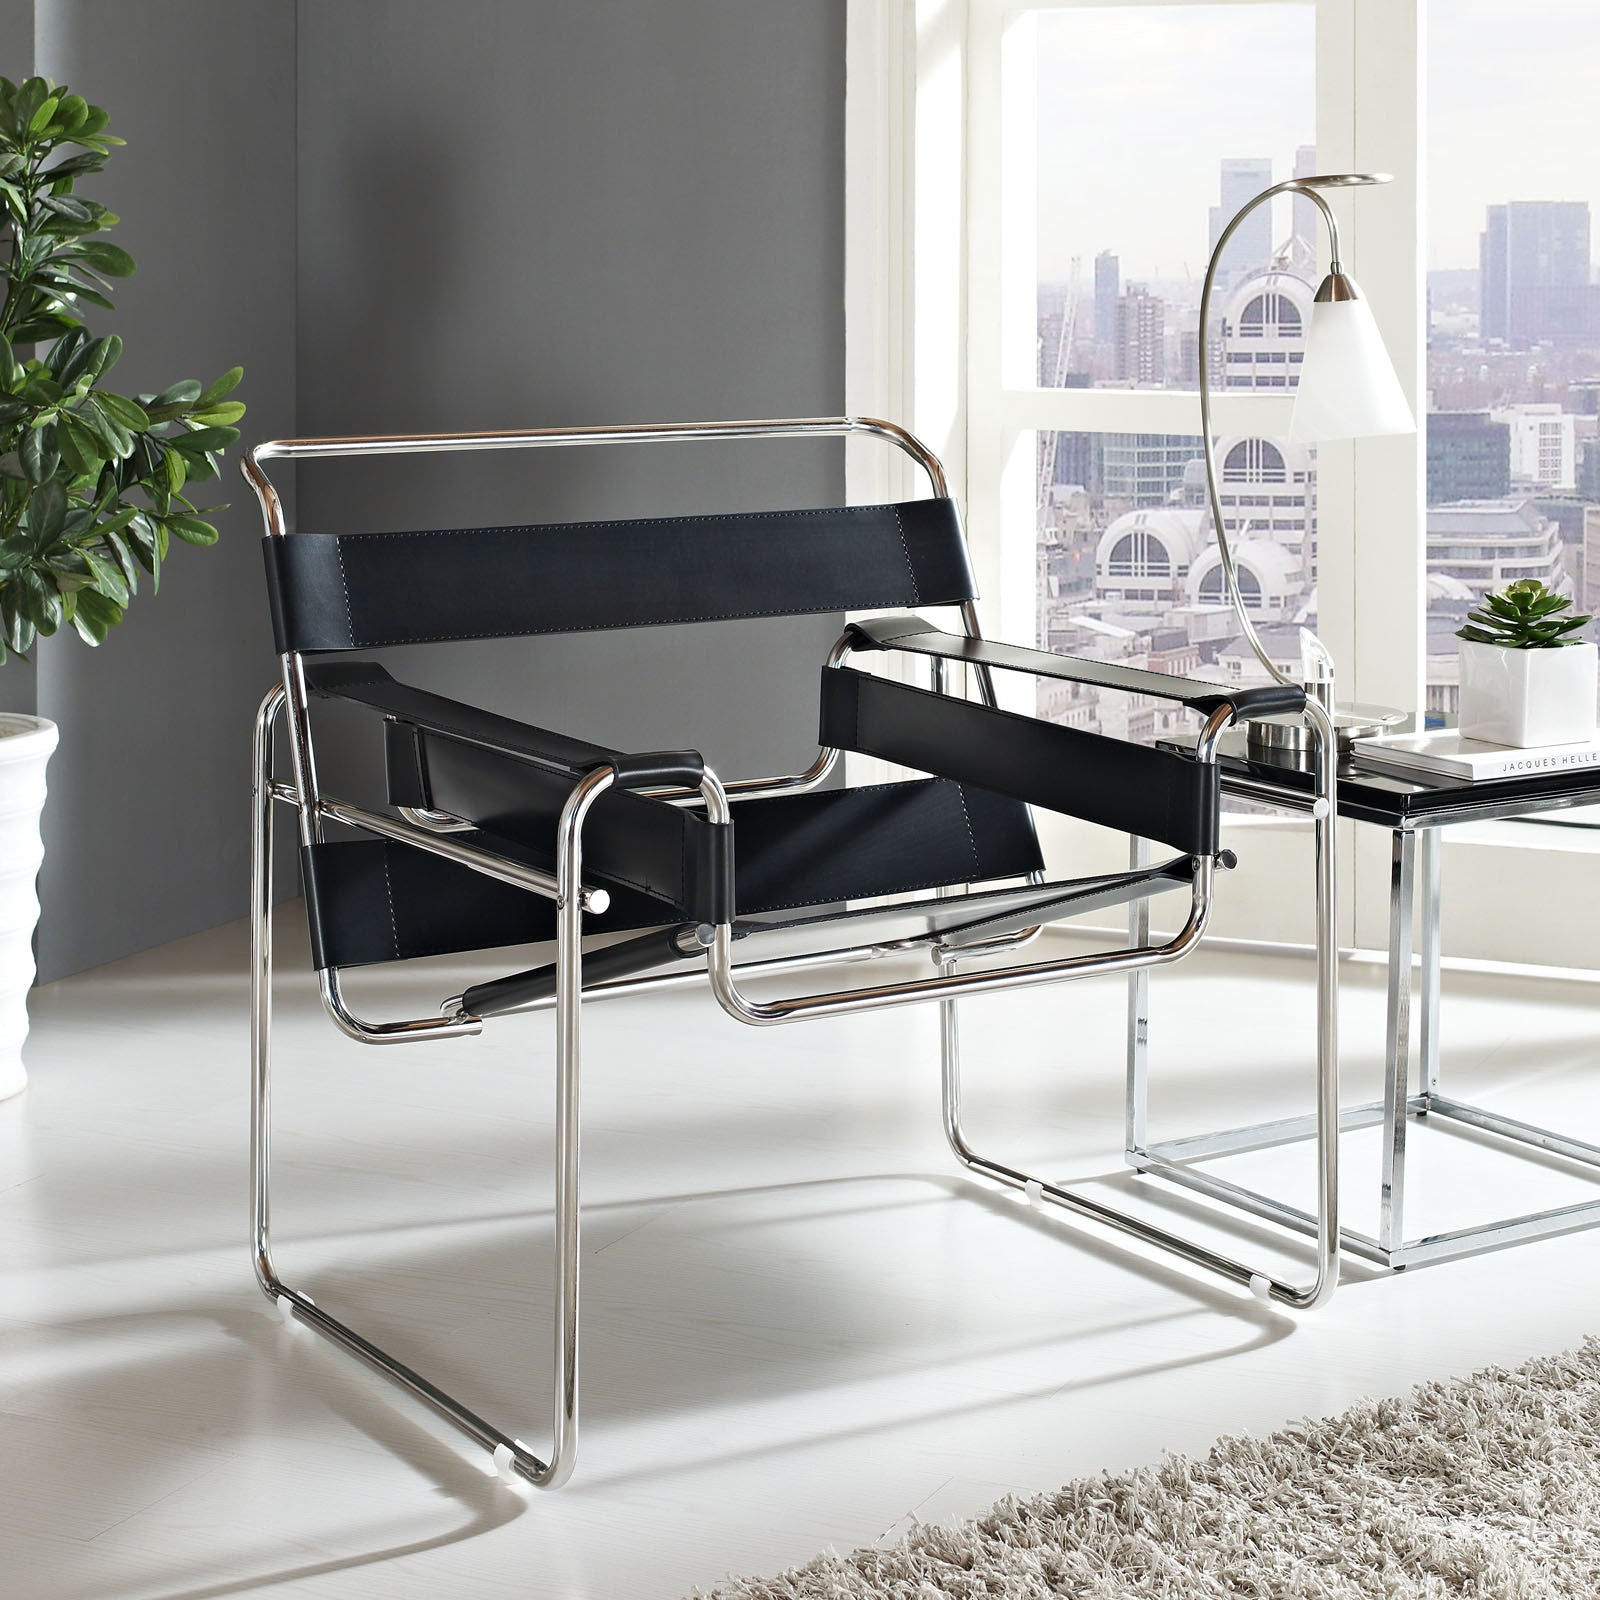 ... Wassily Chair Reproduction   The Modern Source   4 ...